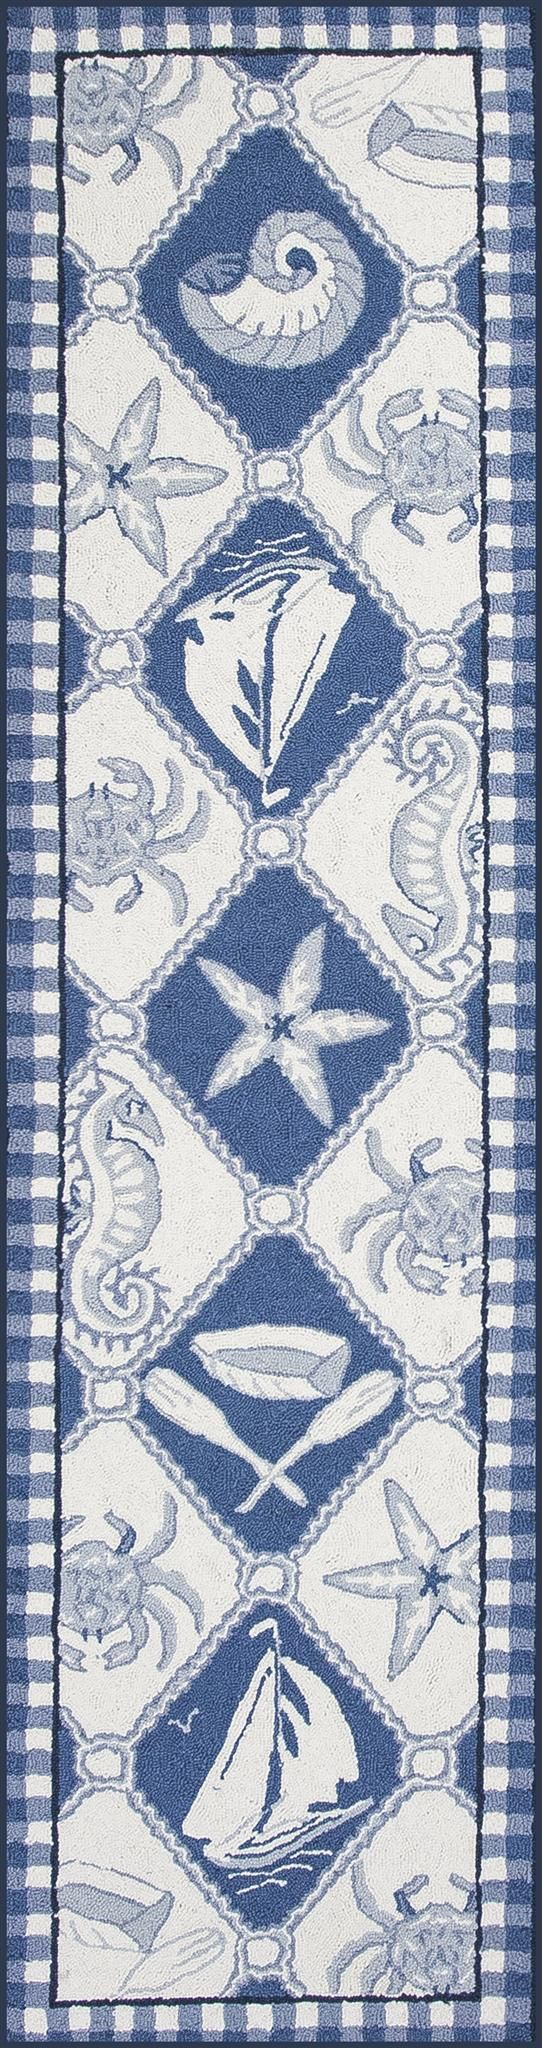 Introducing the Blue and Ivory Nautical Panel Hooked Area Rug, a maritime design with a bold checkered border. Nautical and sea life images are woven in a diamond pattern creating interest and a moder